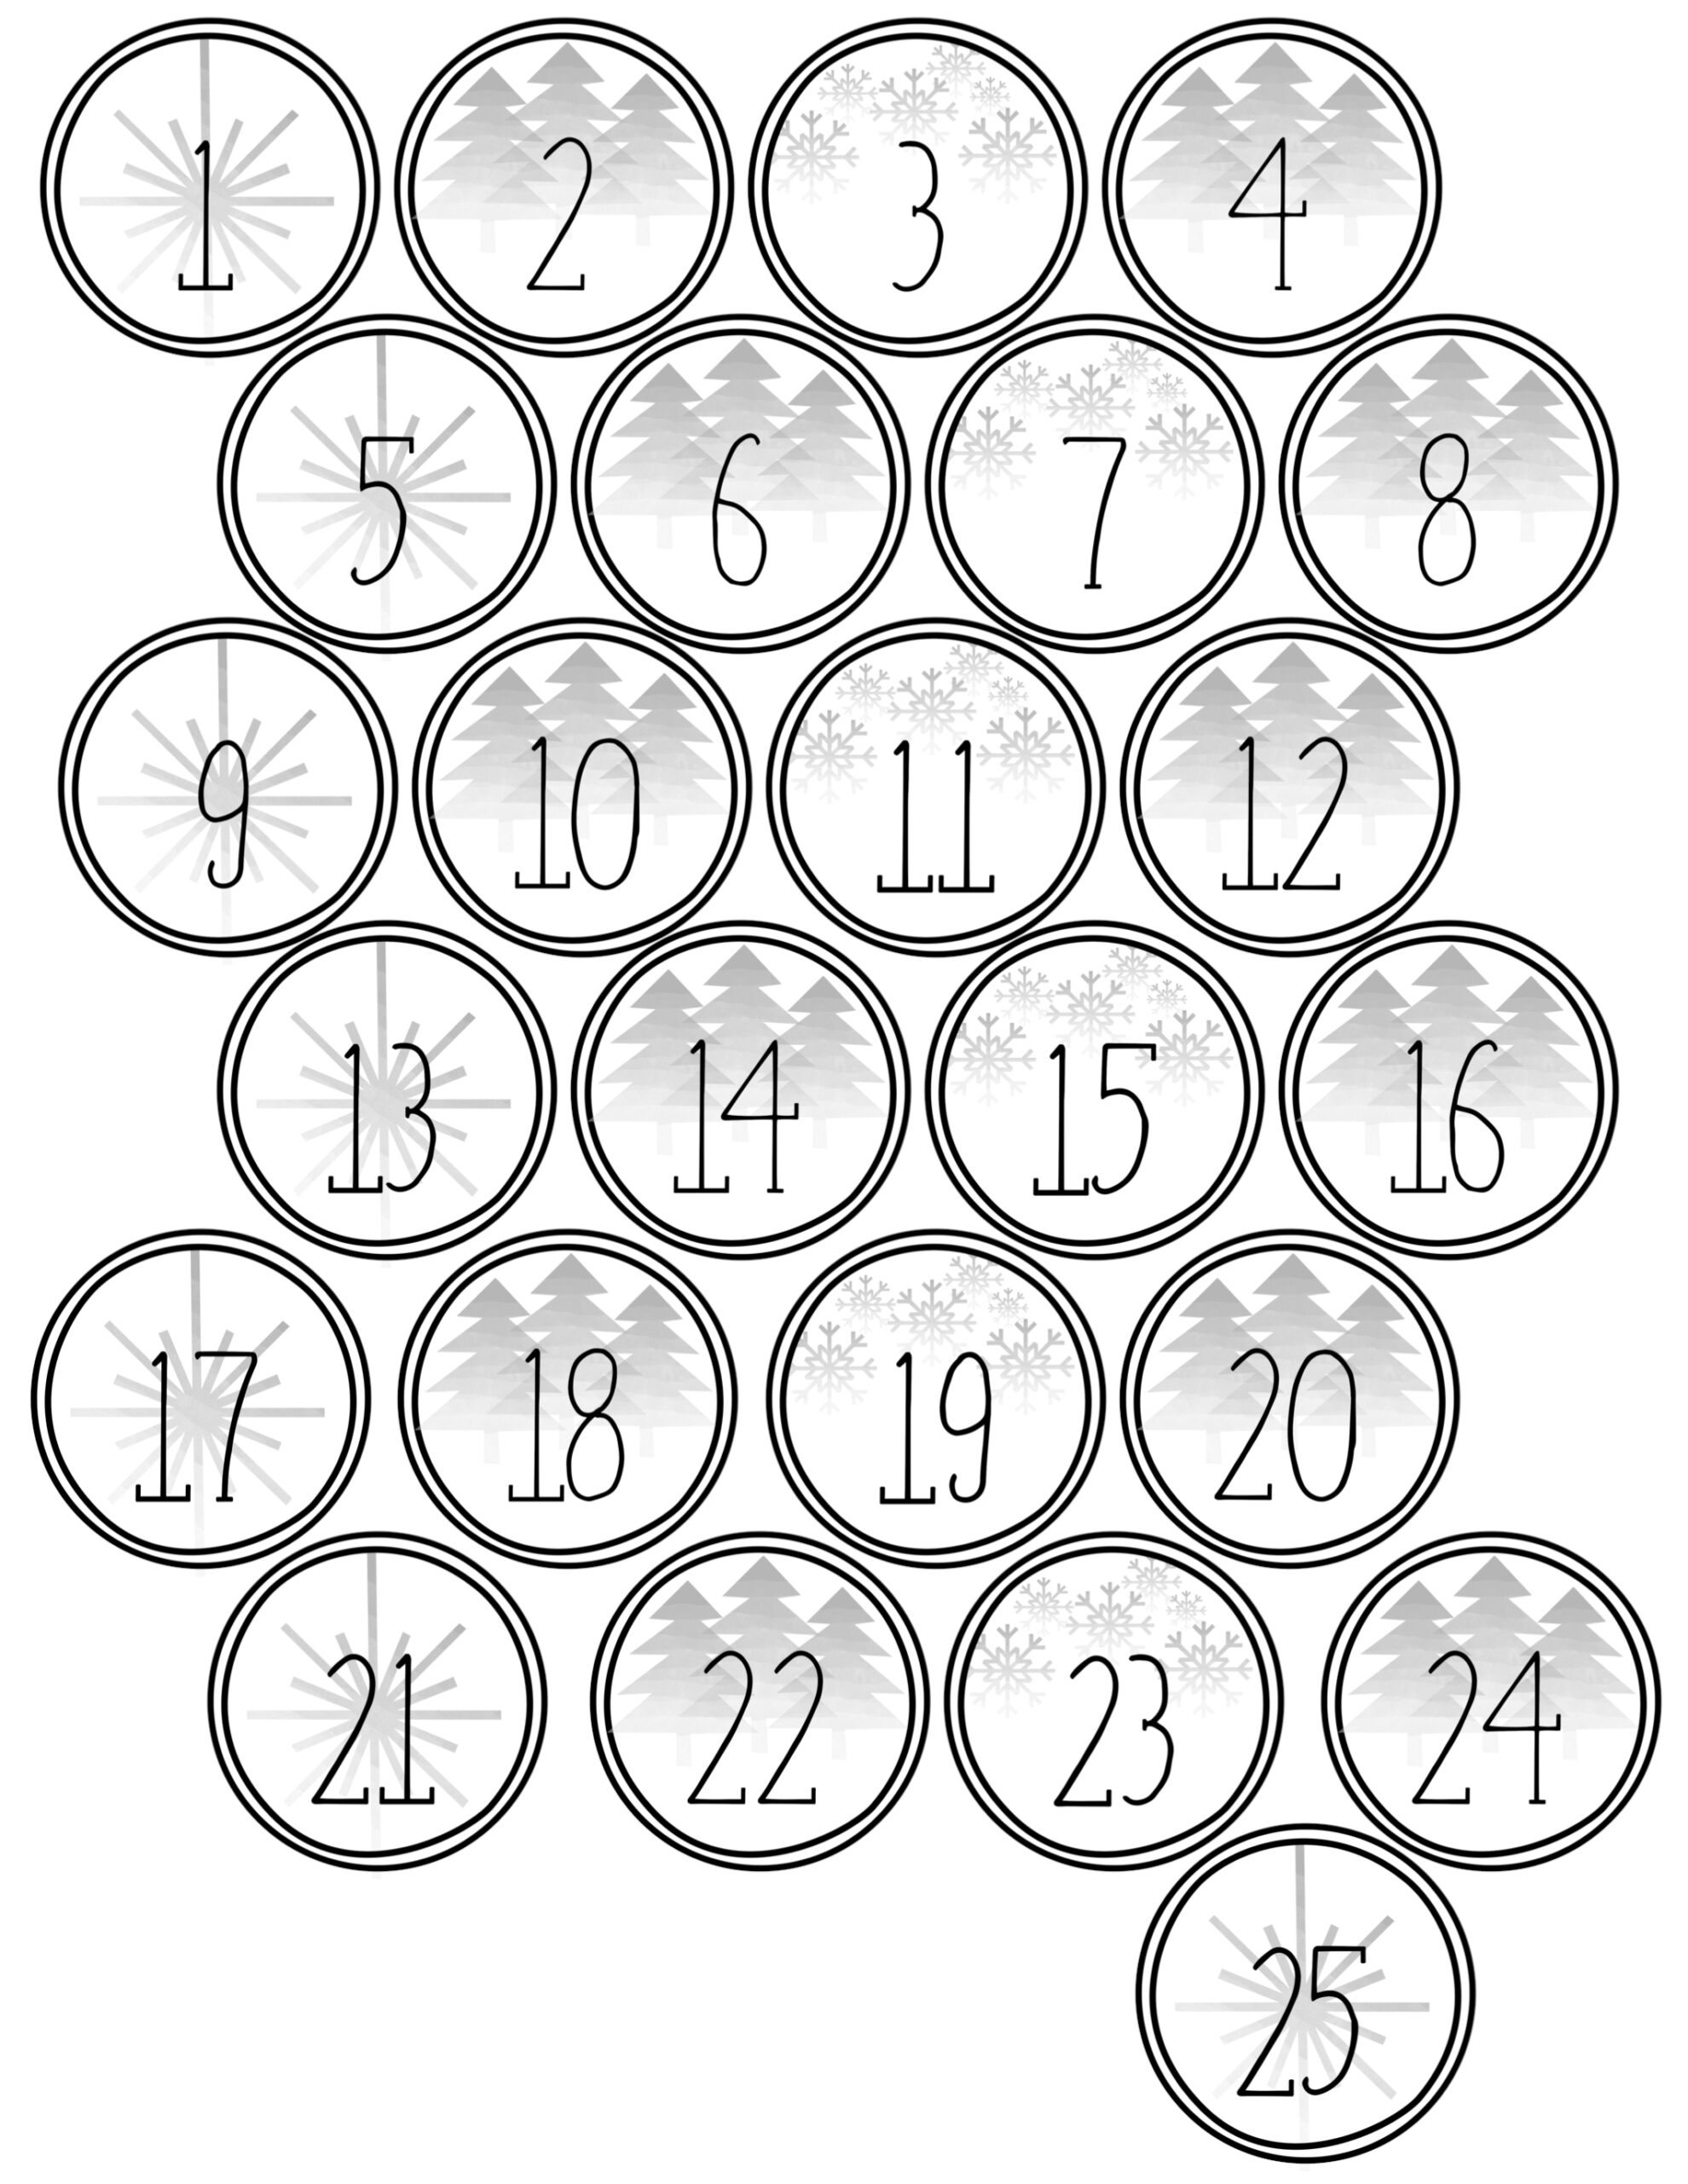 photo about Advent Calendar Printable referred to as Totally free printable arrival figures - Edreams multi metropolis